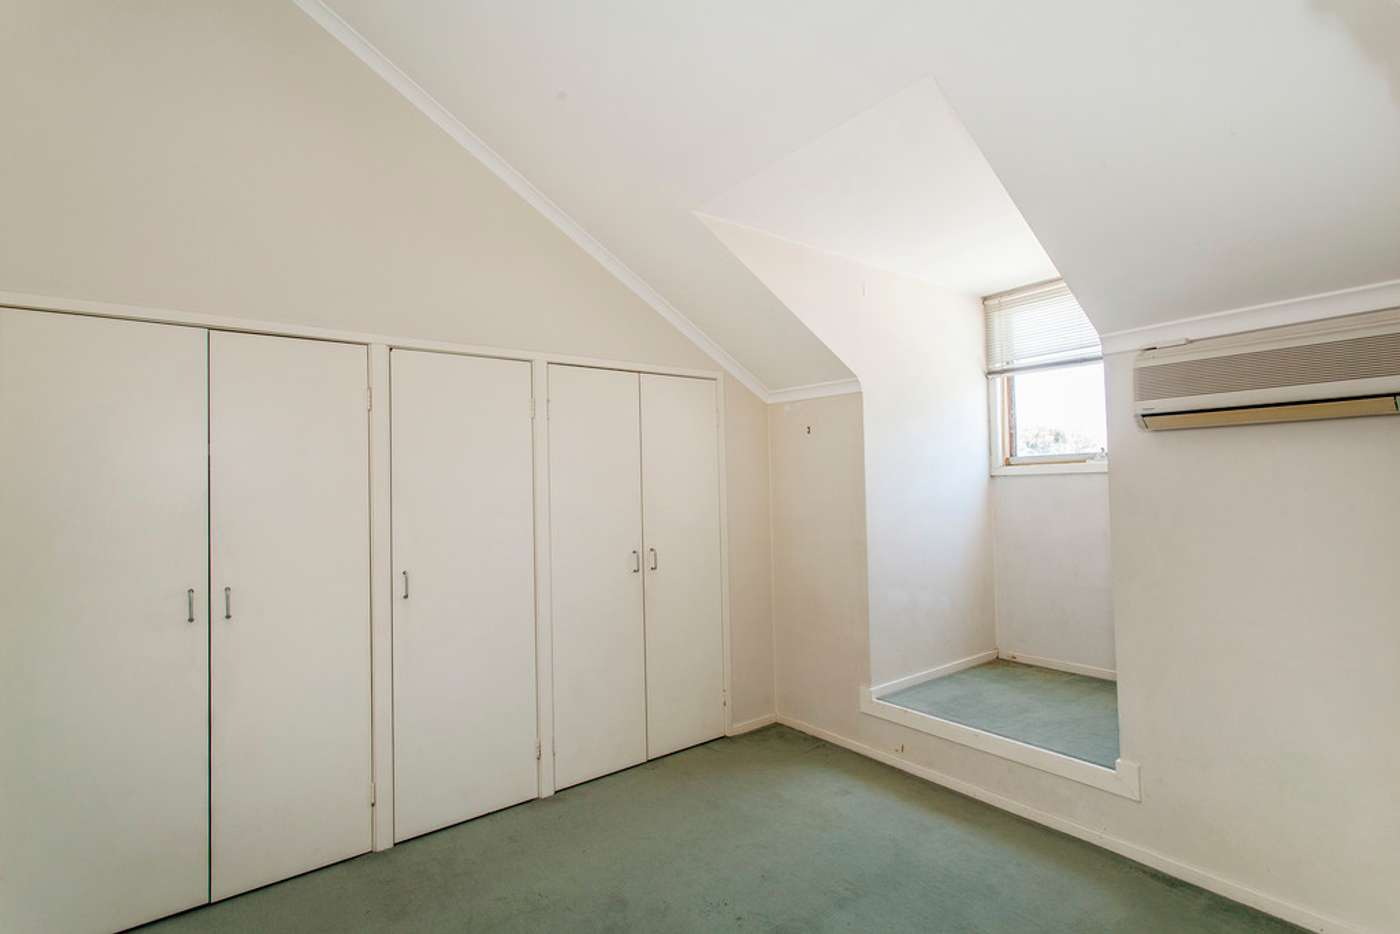 Sixth view of Homely apartment listing, 32/114 Dodds Street, Southbank VIC 3006